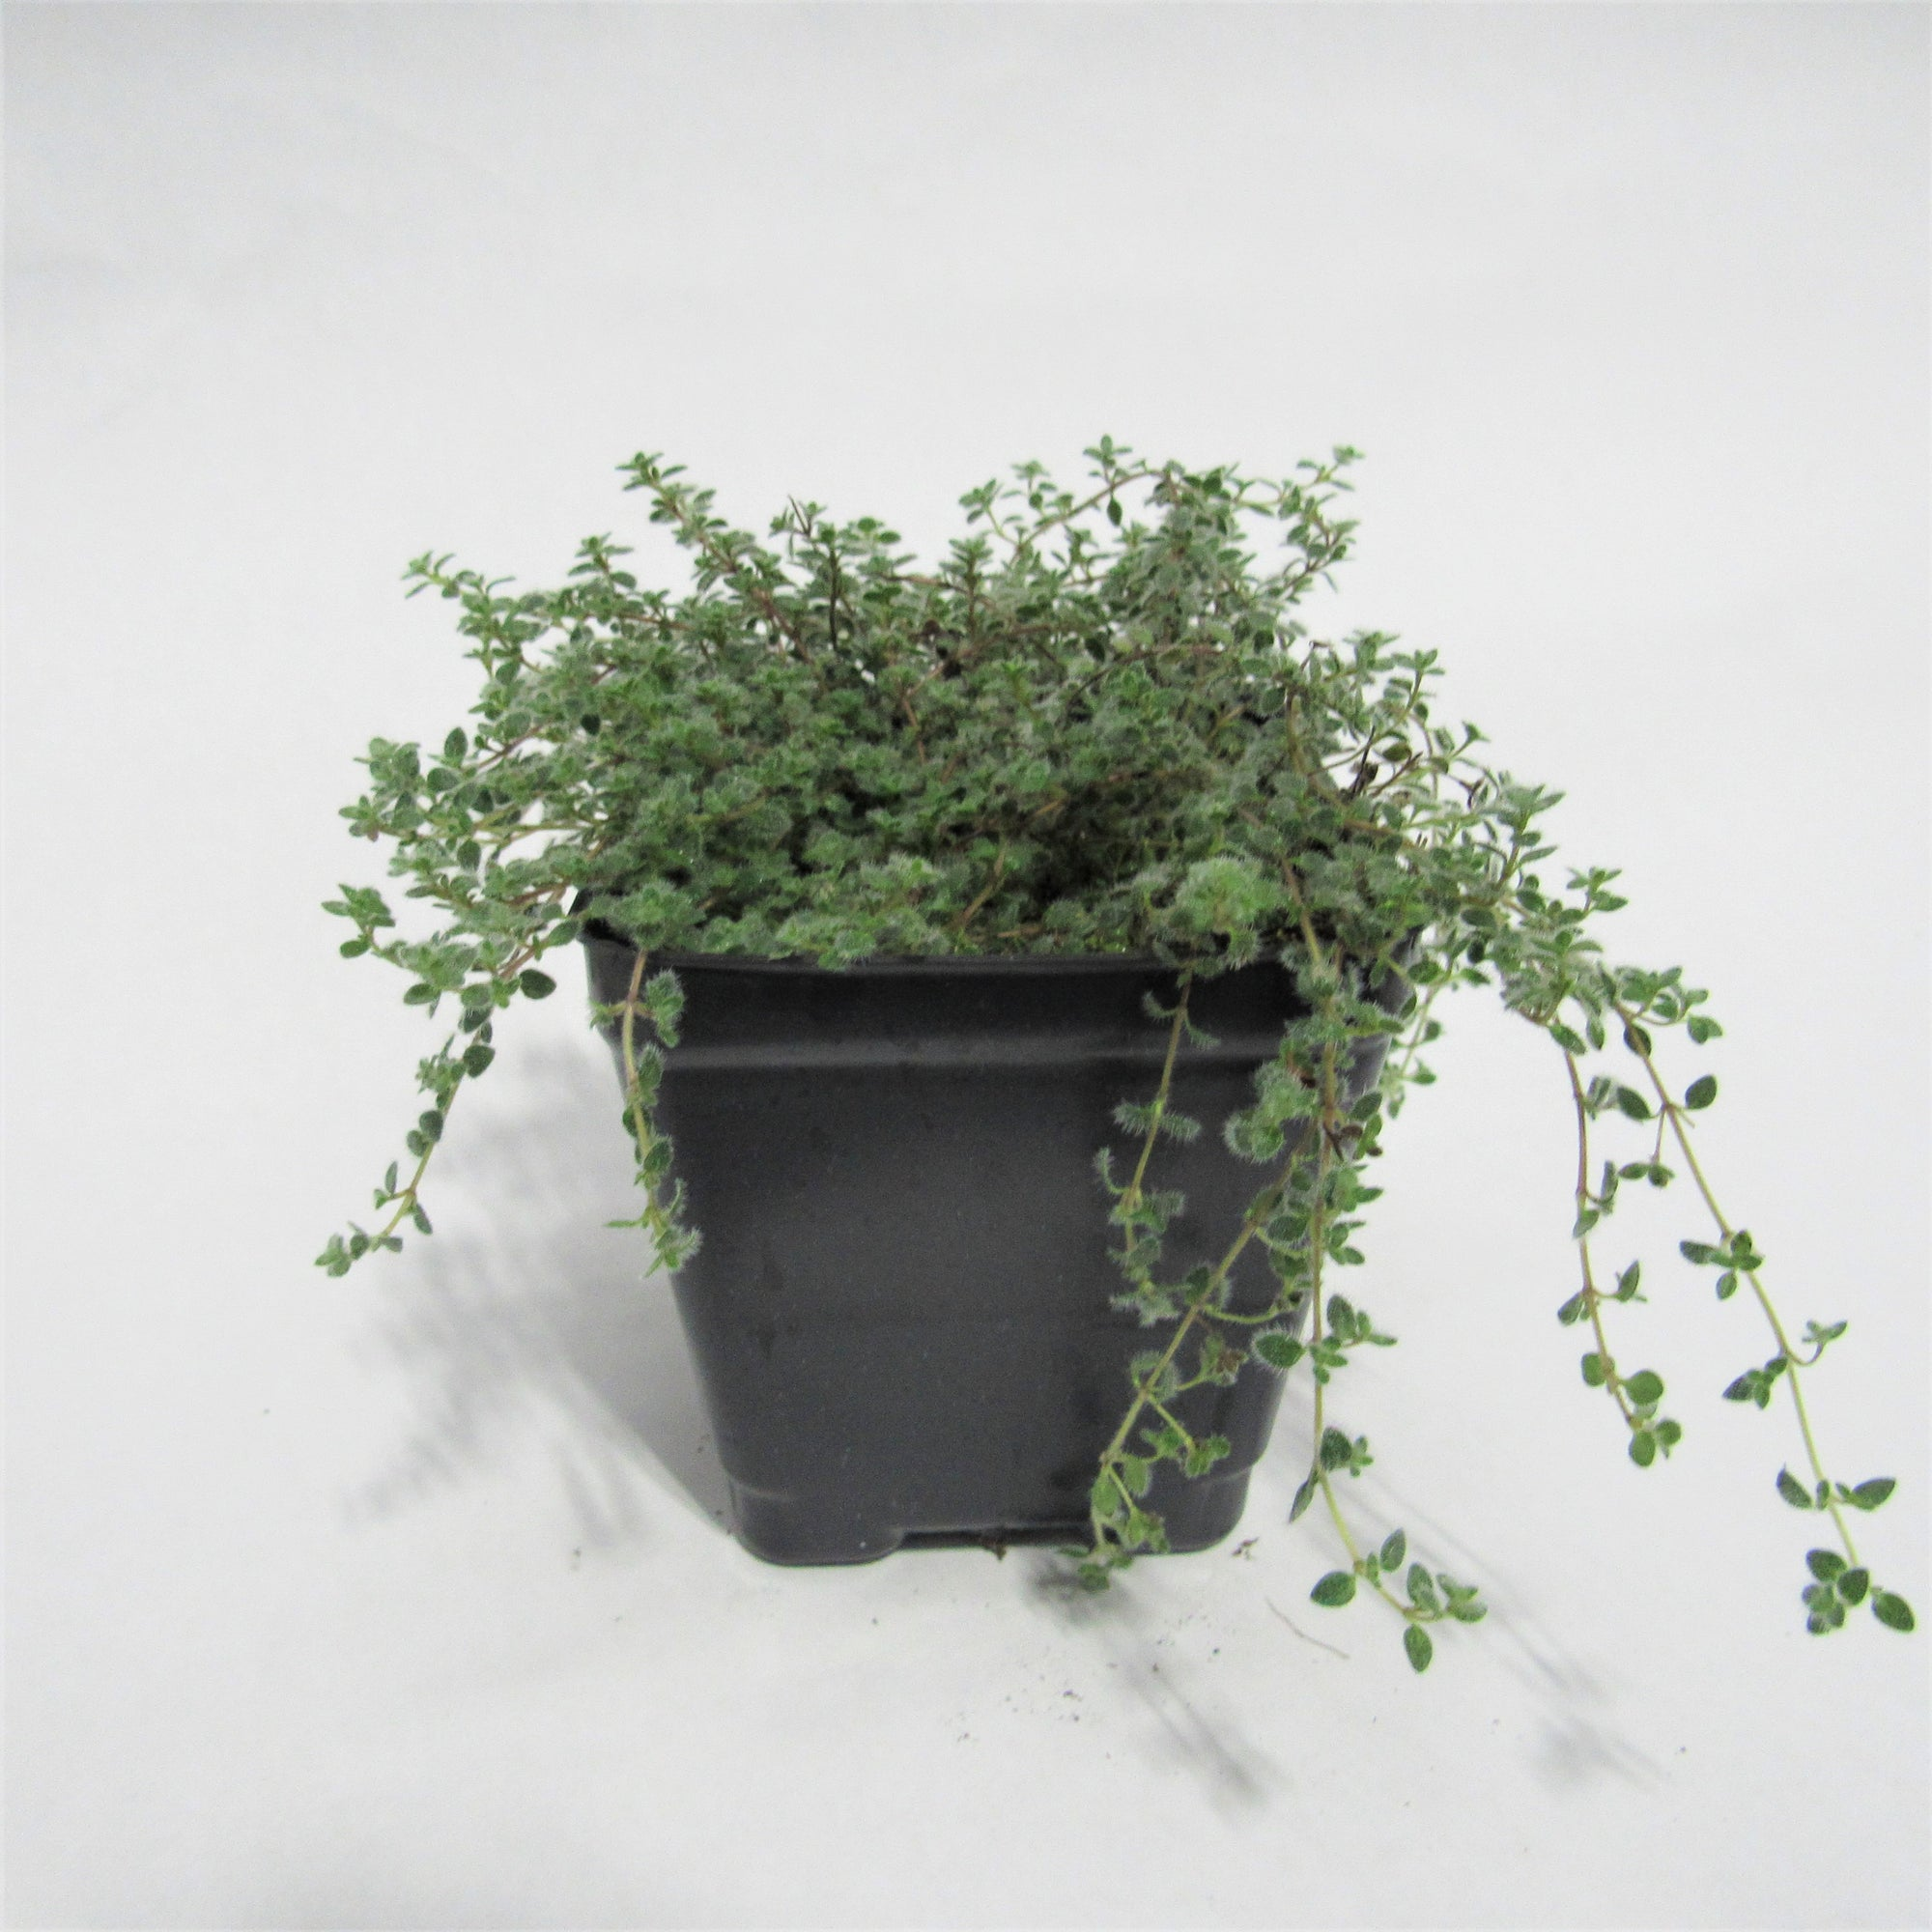 Thyme 'Woolly'